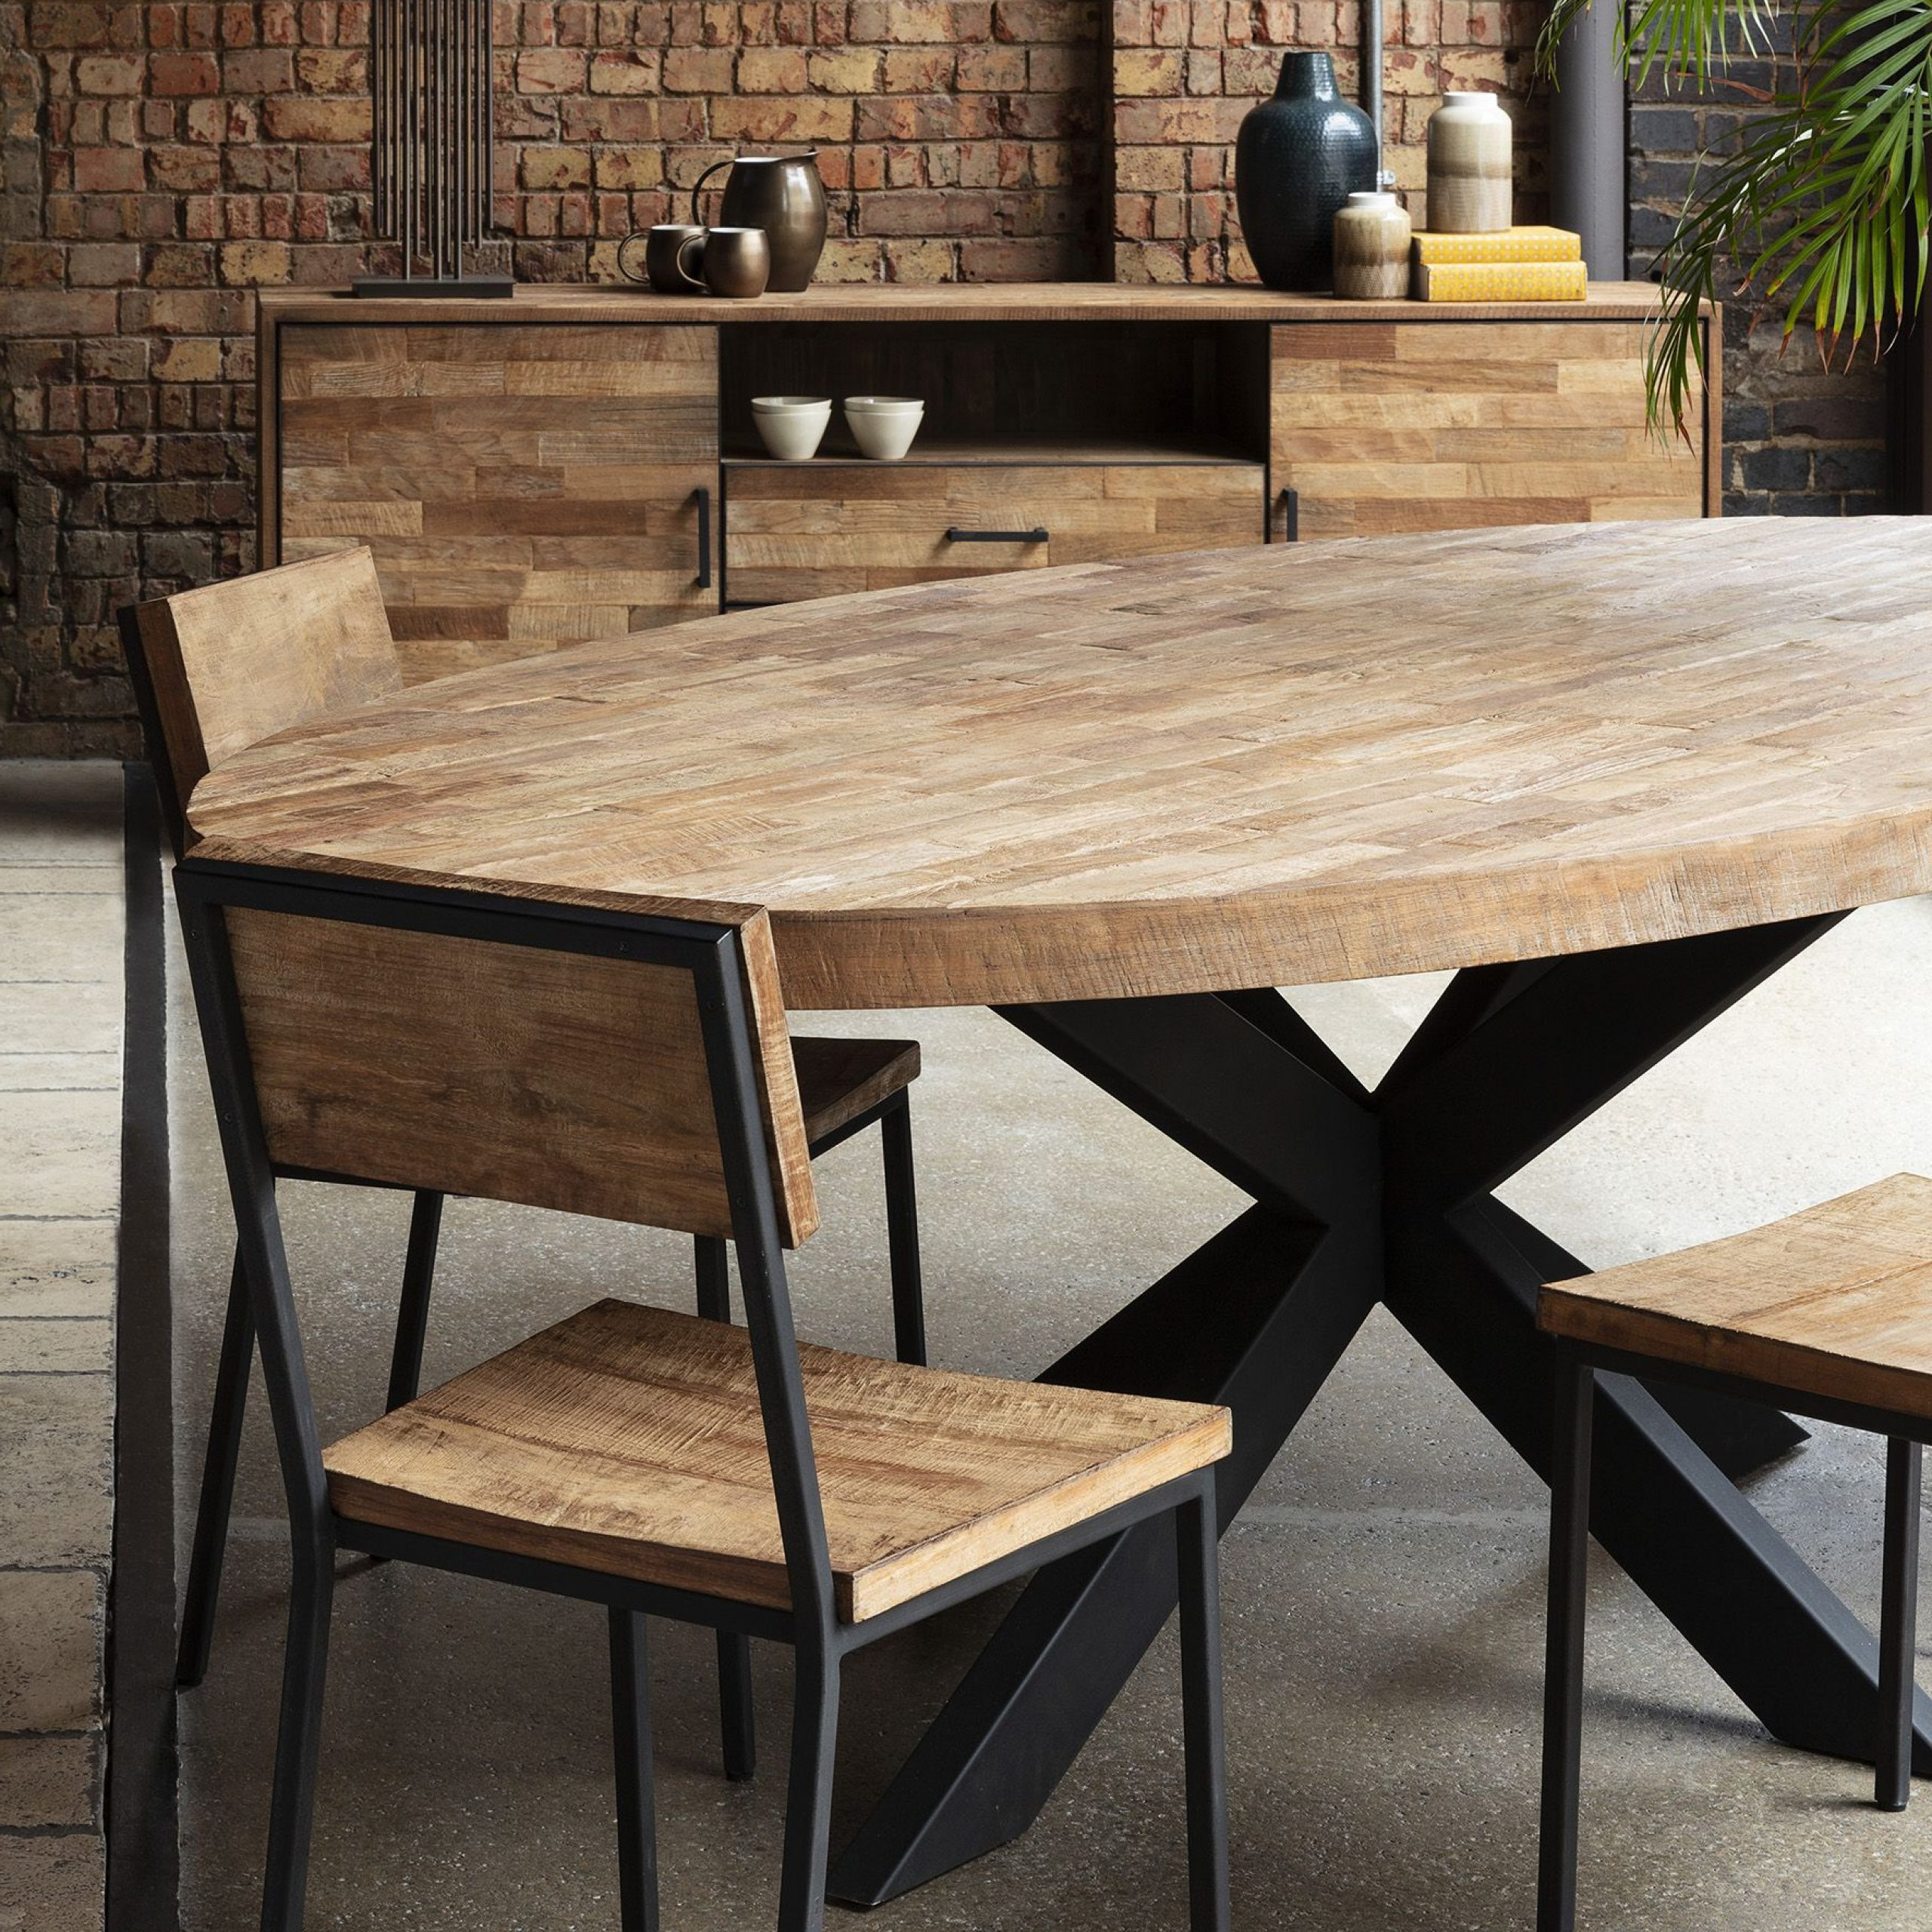 Large Round Dining Inside Current Acacia Wood Top Dining Tables With Iron Legs On Raw Metal (View 12 of 30)